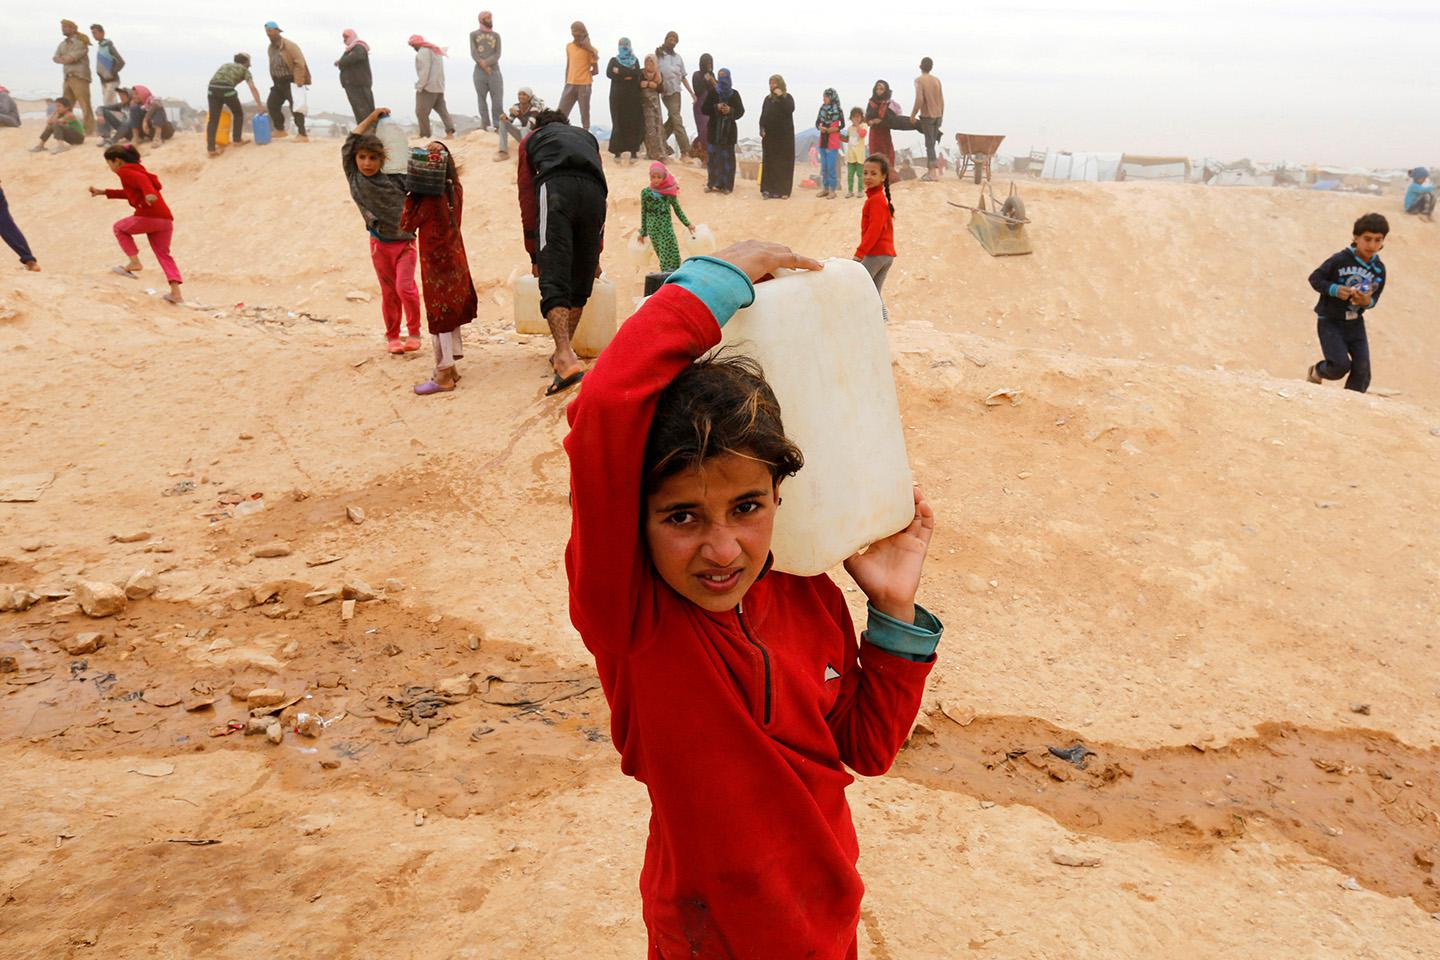 Syrian refugees collect water while after crossing into Jordanian territory, near the town of Ruwaished, east of the capital Amman, May 4, 2016.